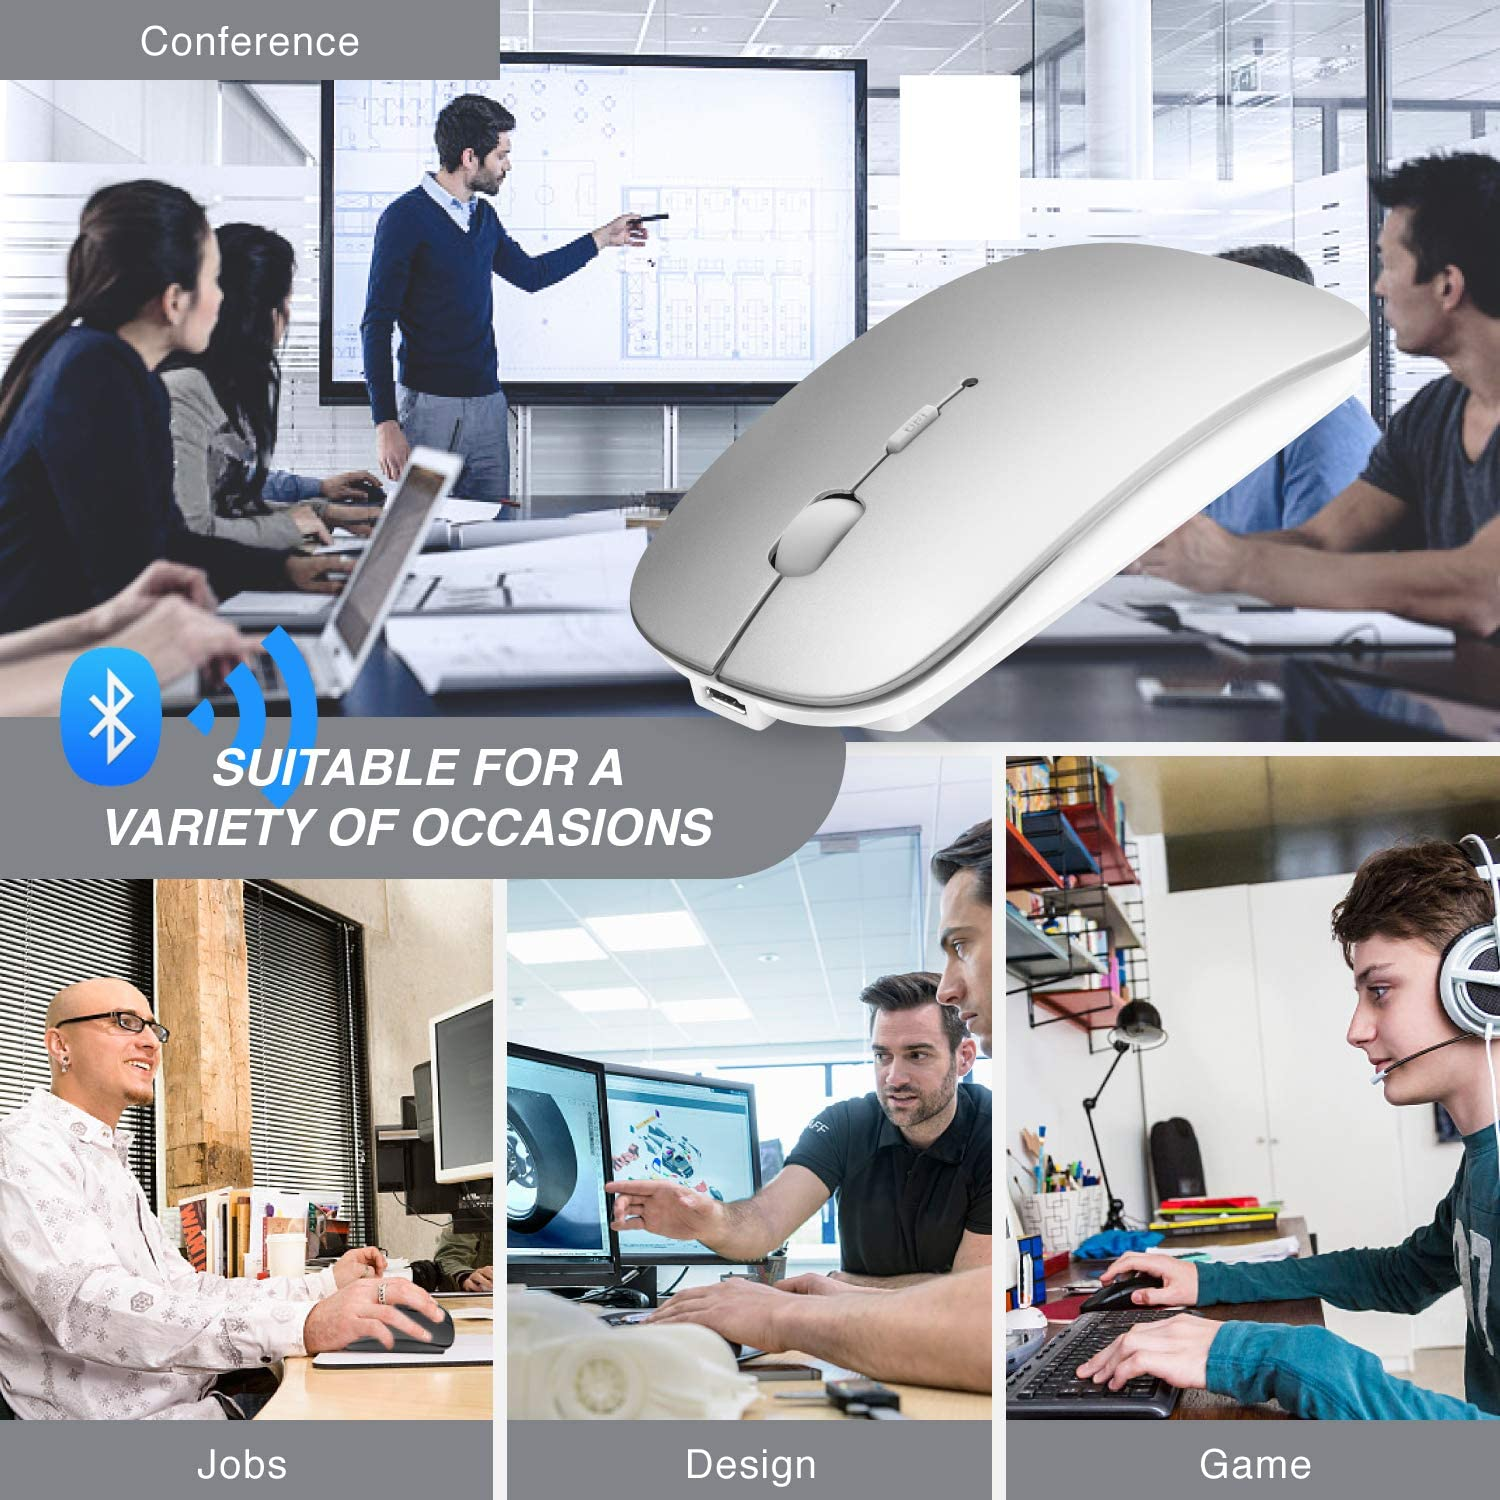 Bluetooth Mouse for Laptop//iPad//iPhone//Mac // Android PC iOS13.1.2 and Above Wireless Mouse Slim USB Rechargable Quiet Mice for Windows//Linux//Notebook//Mac//MacBook Air Bluetooth4.0 Silver